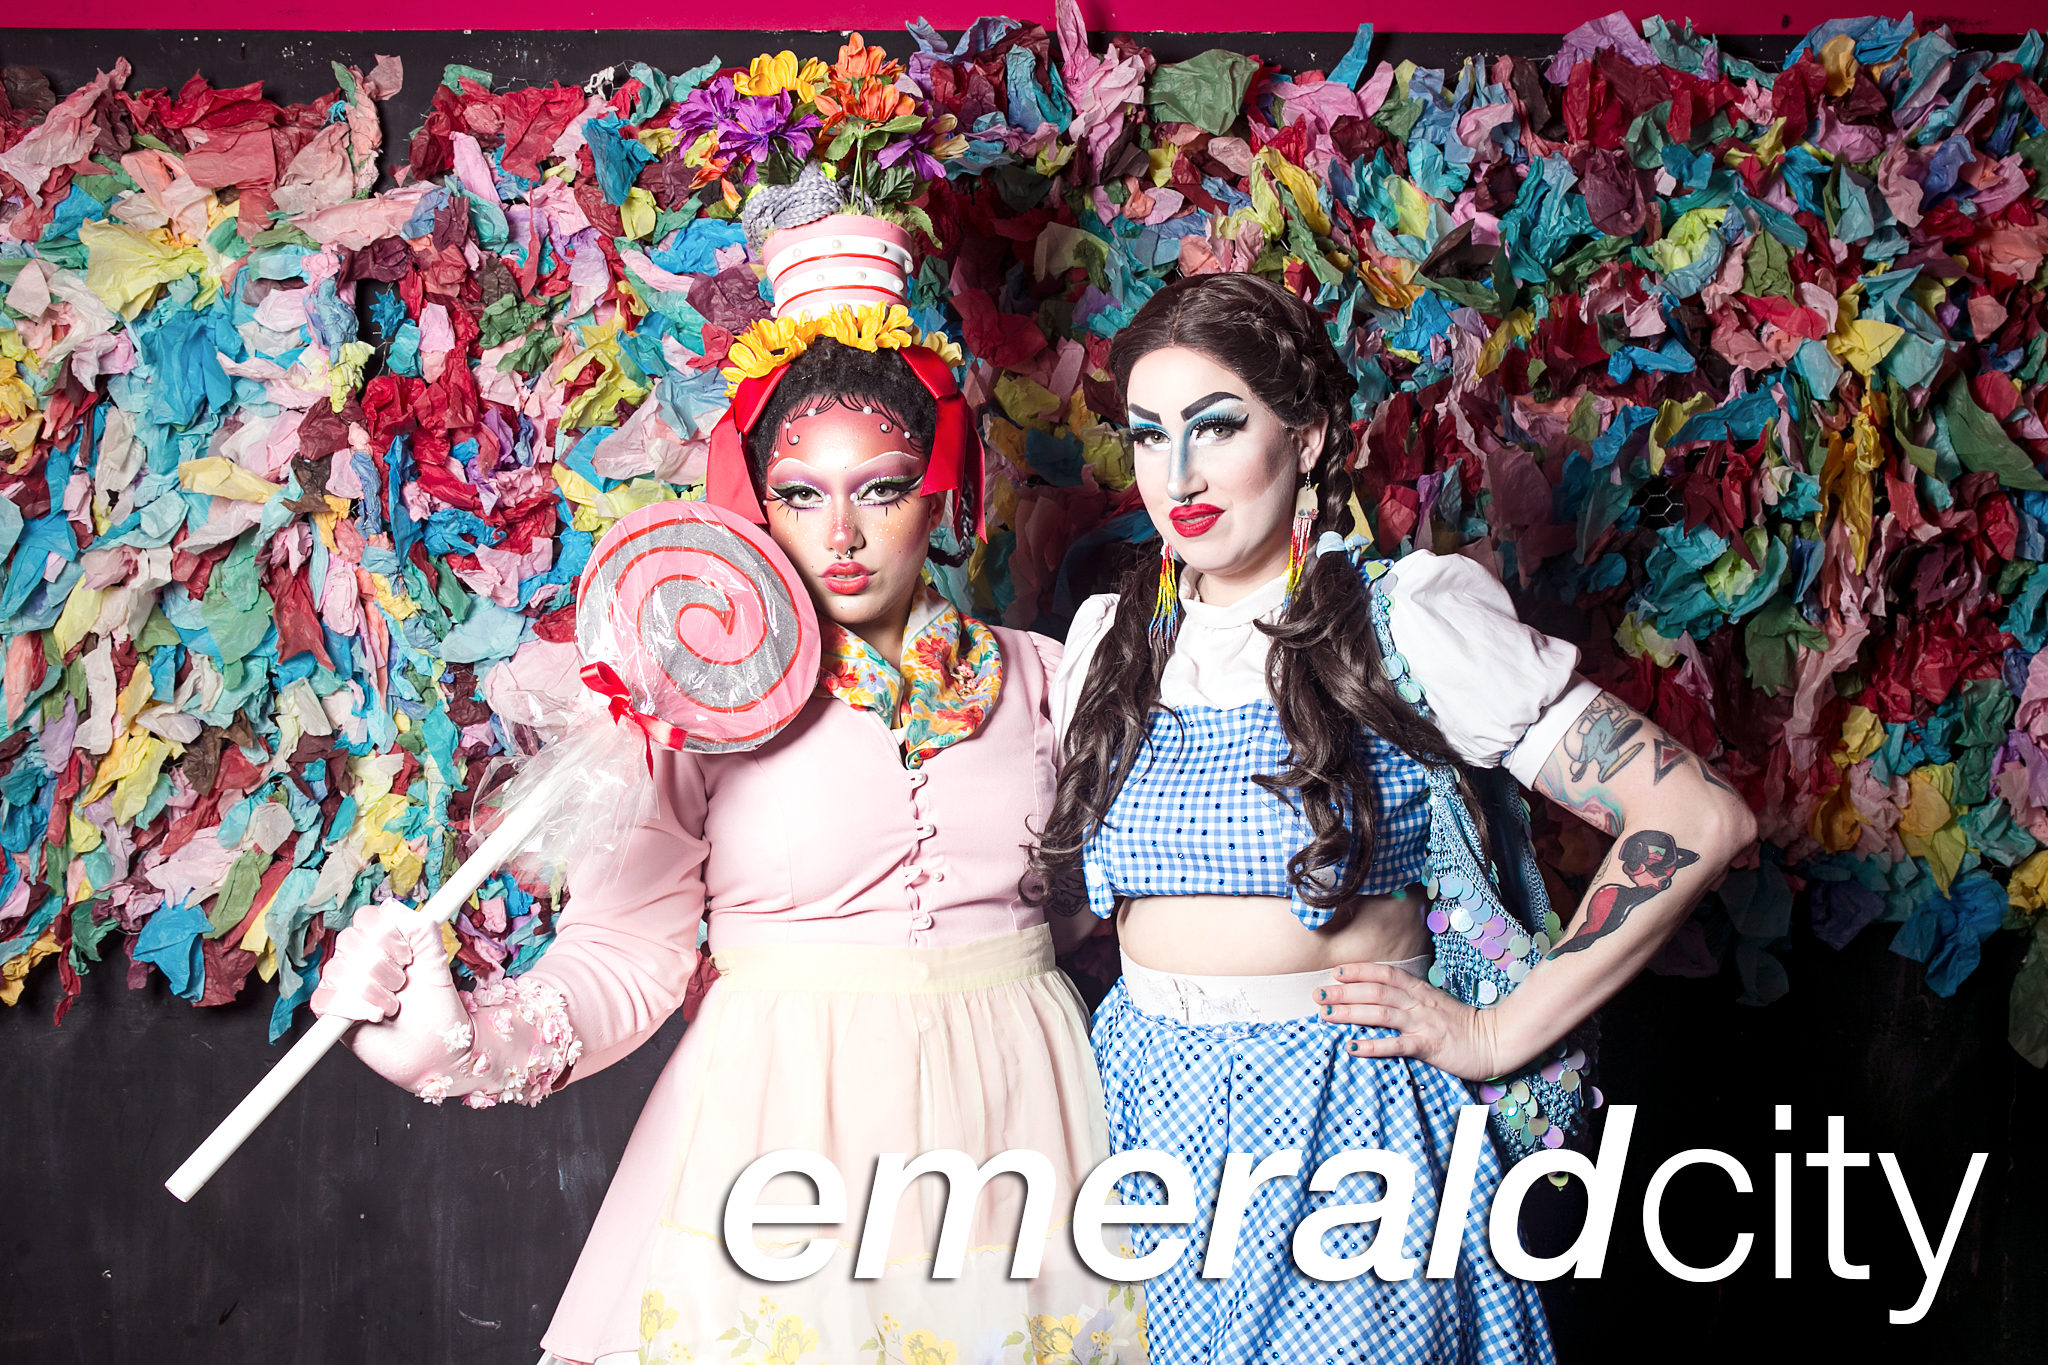 glitterguts portrait booth photos from emerald city pride afterparty at annoyance theater, chicago 2019